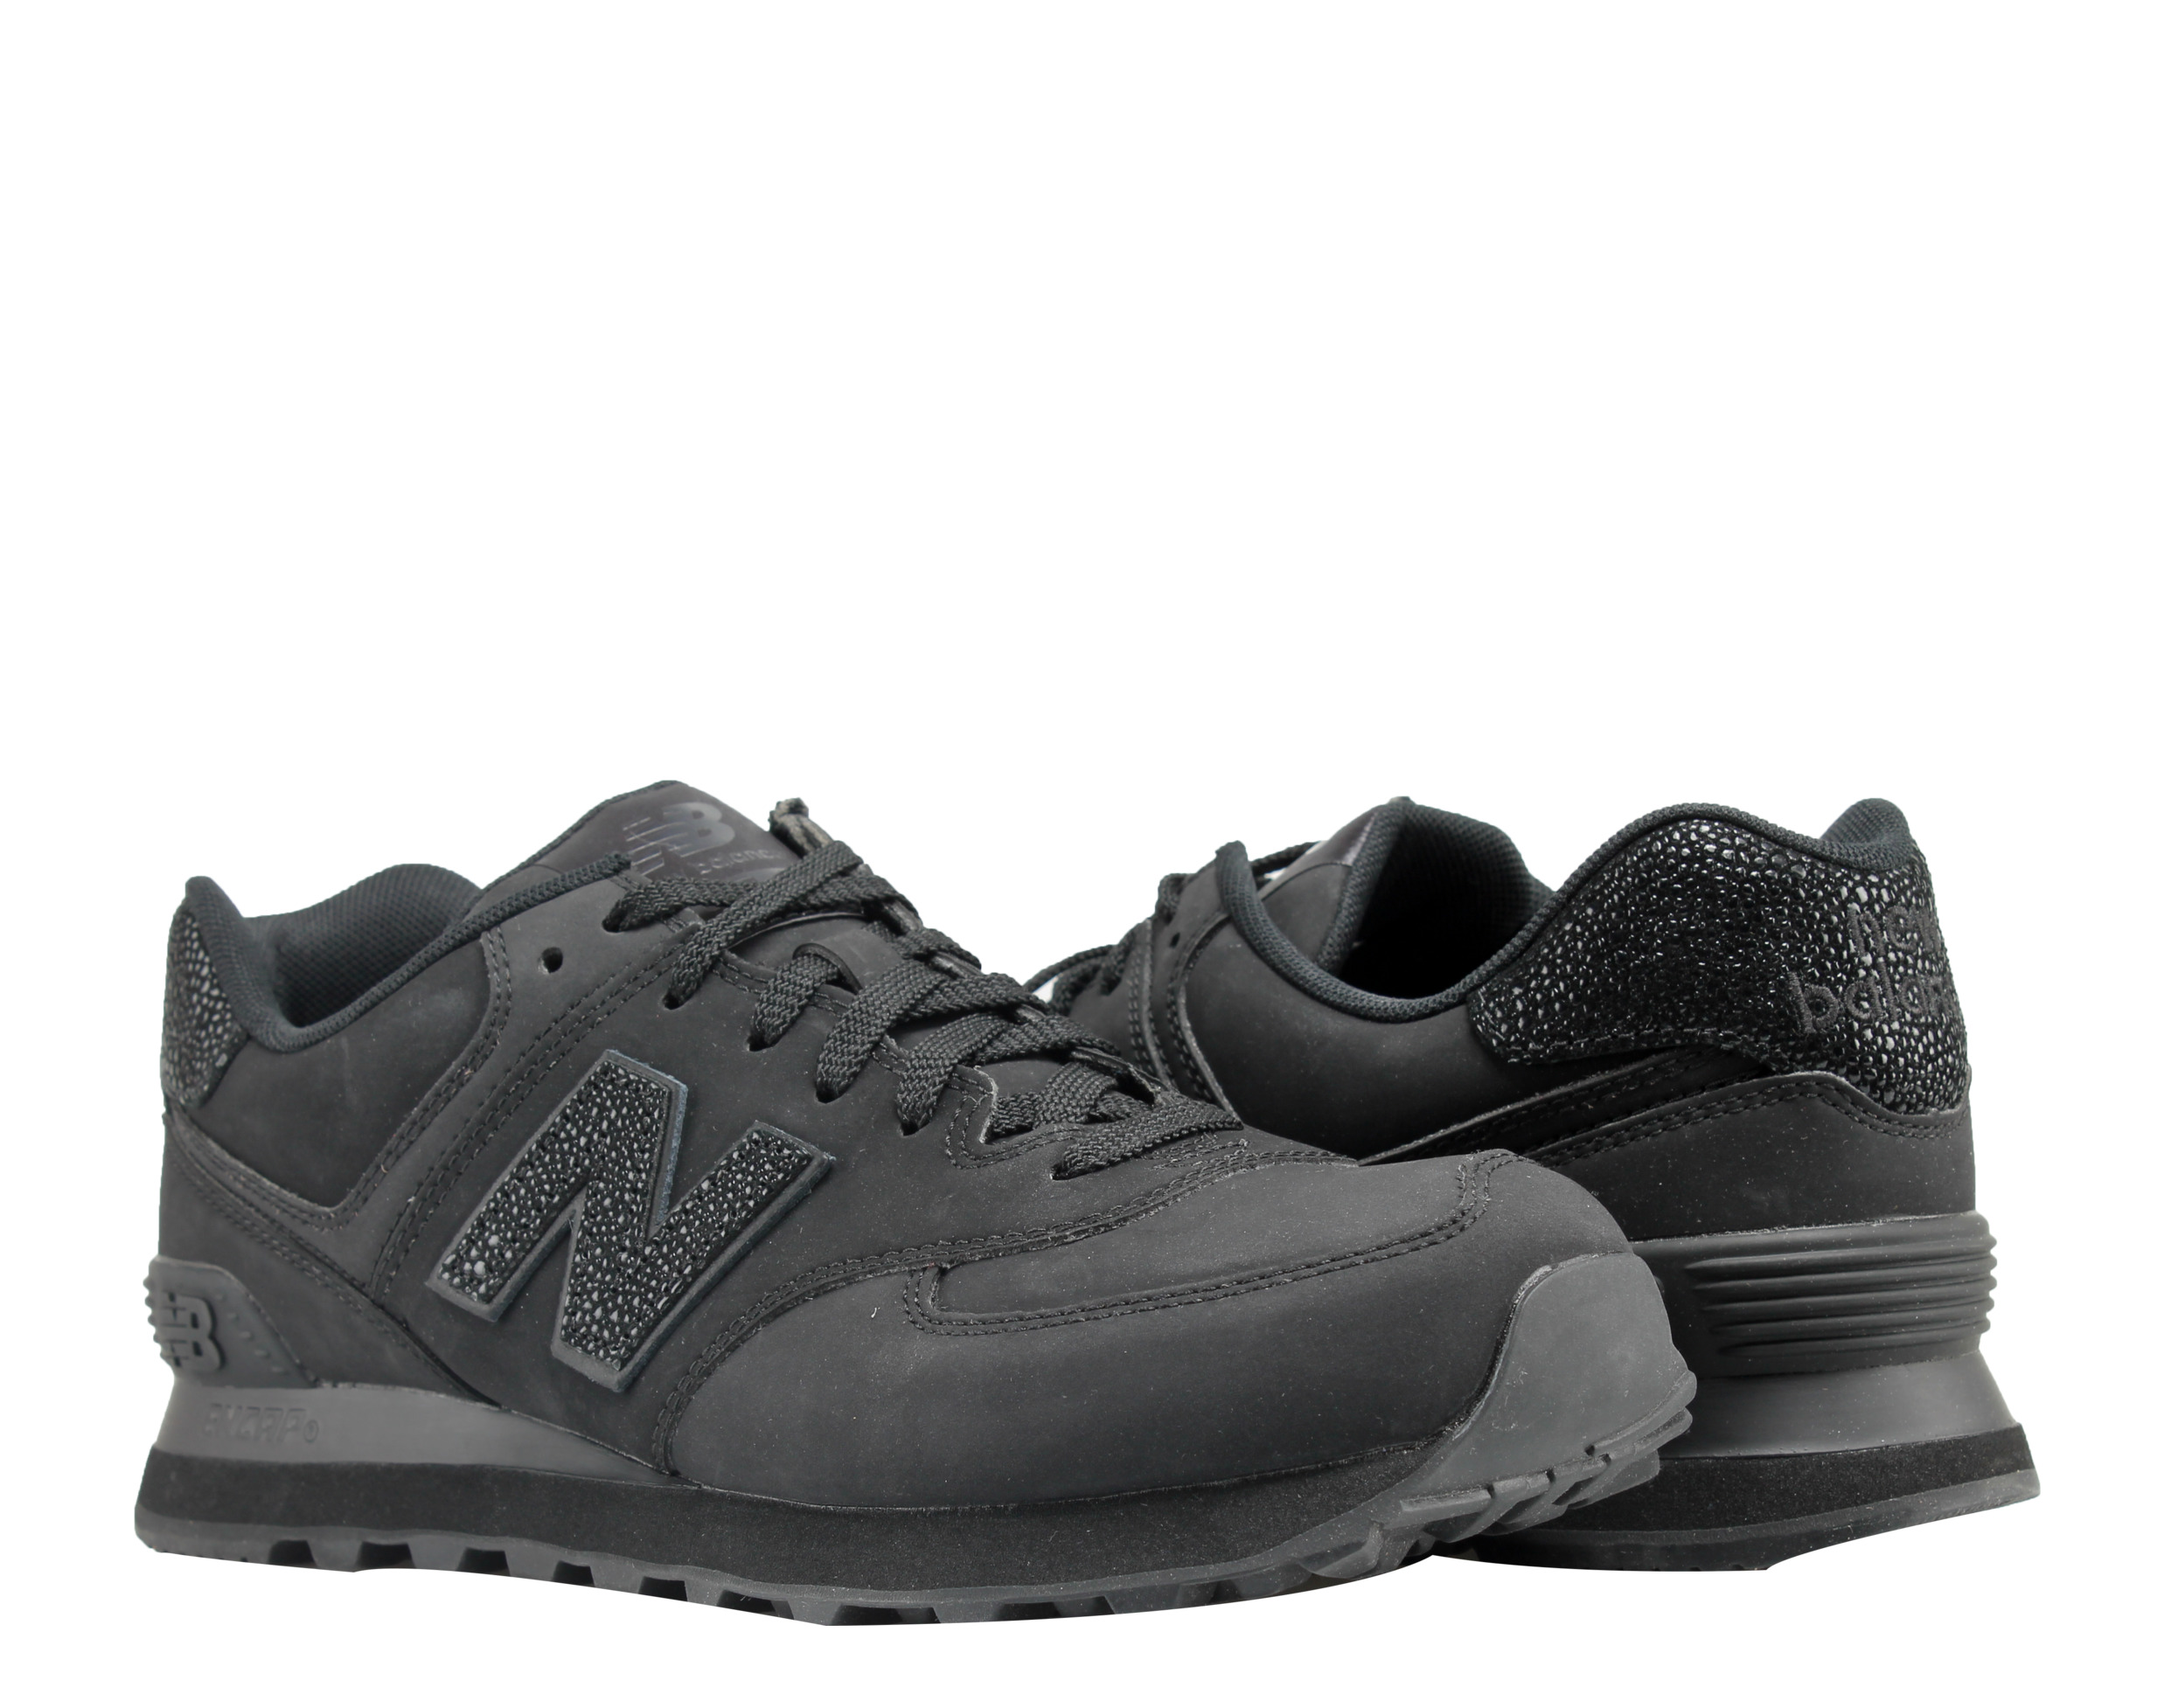 New Balance 574 Black Caviar Pack Men's Running Shoes ML574BEX by